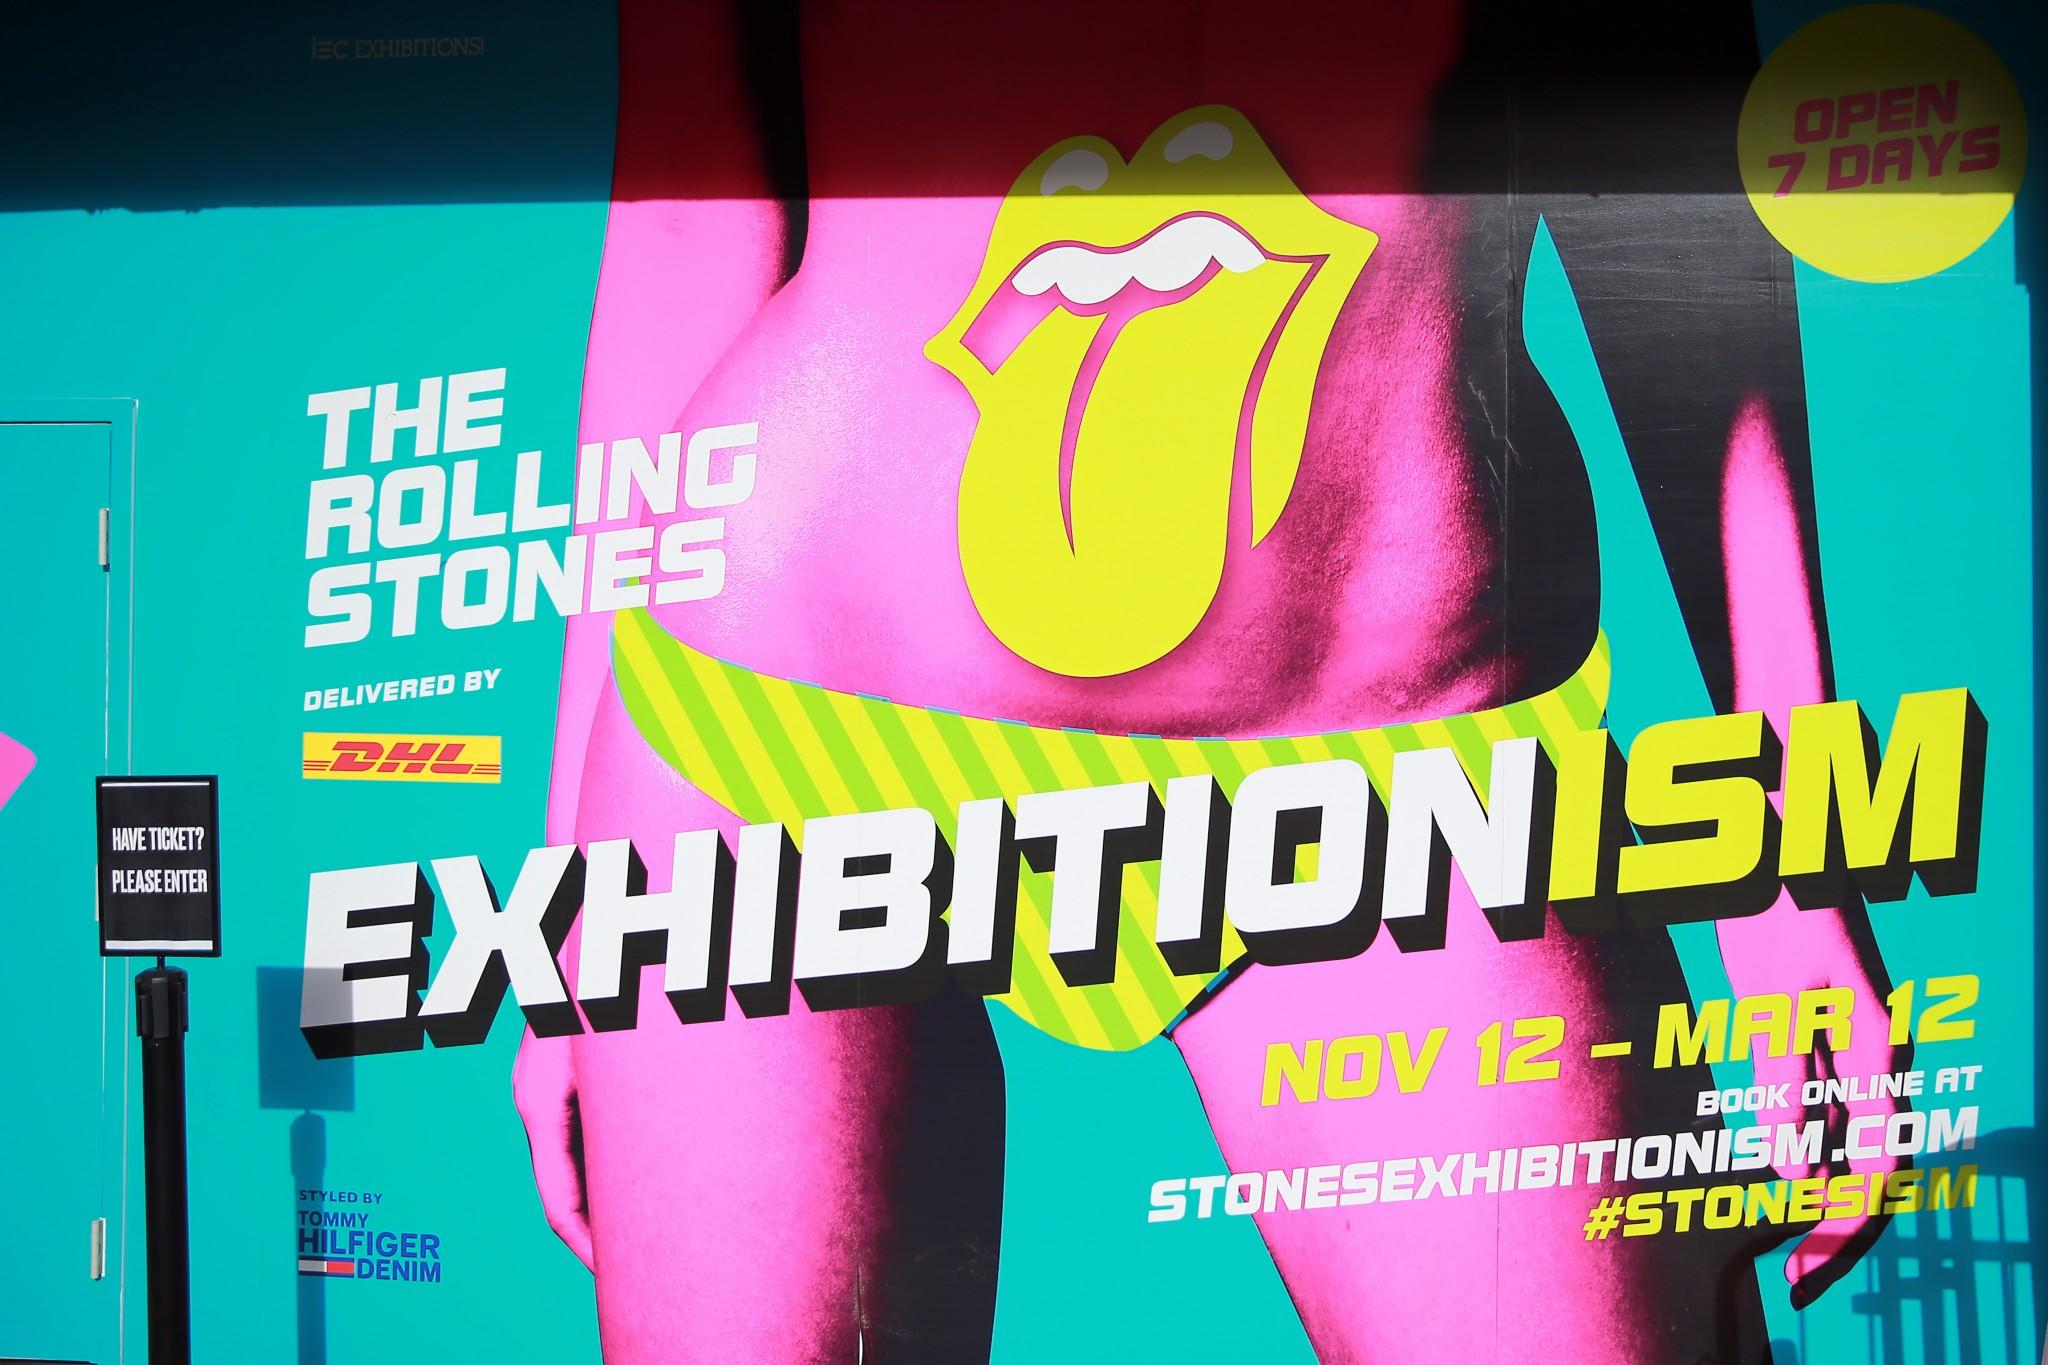 Exhibitionism is the largest touring experience of its kind ever to be staged, and the first time in history the band has unlocked their vast private archive. Exhibitionism will run in New York through March 12, 2017. (Gordon Donovan/Yahoo News)